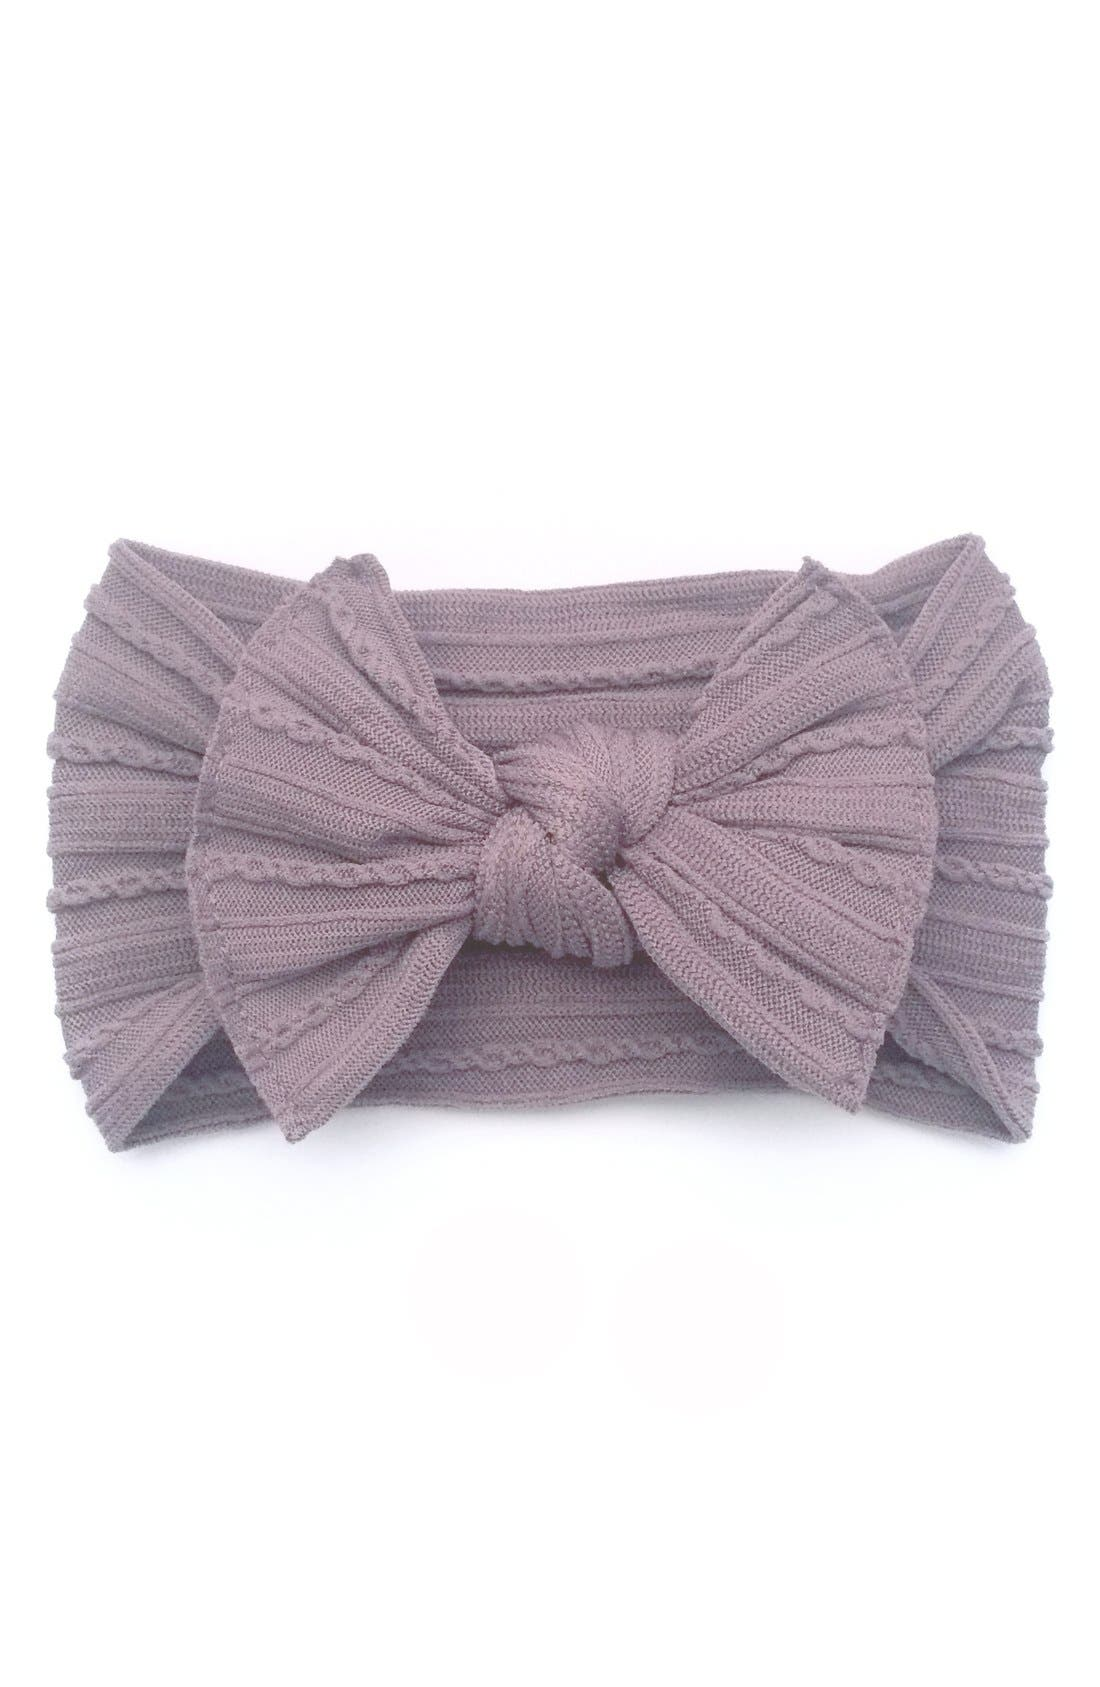 BABY BLING Cable Knit Bow Headband